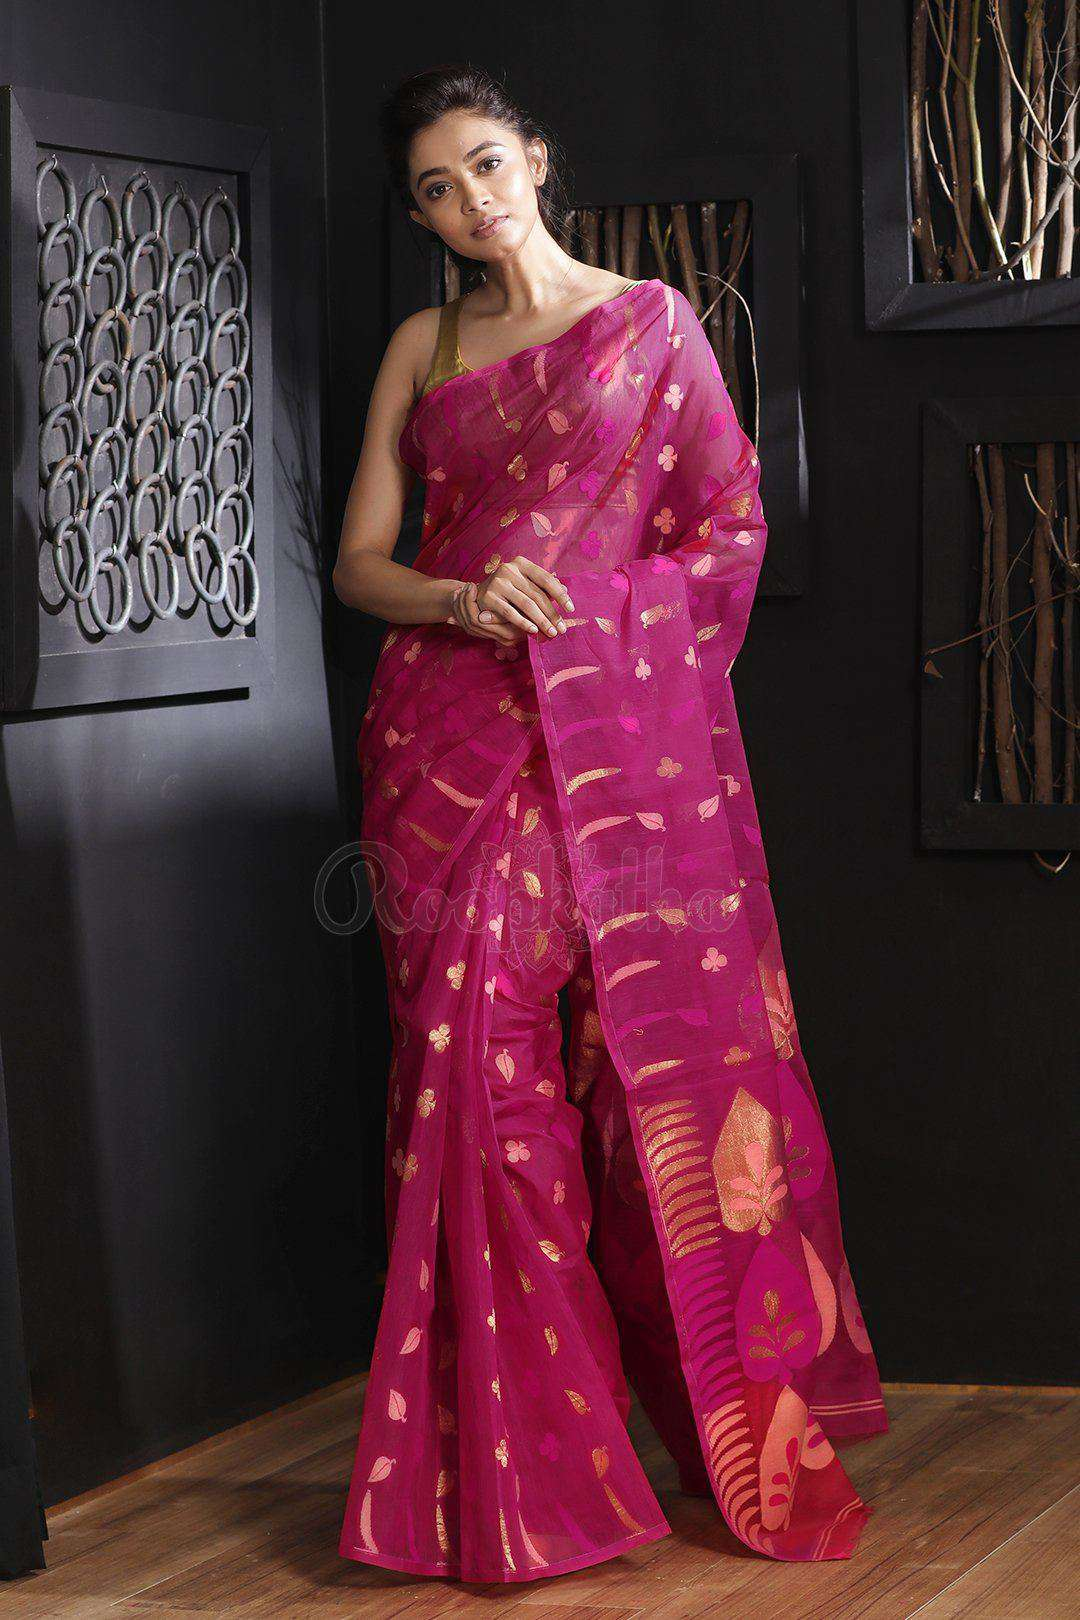 91bd459b7af24 Fuchsia Jamdani Saree With Zari - Roopkatha - A Story of Art